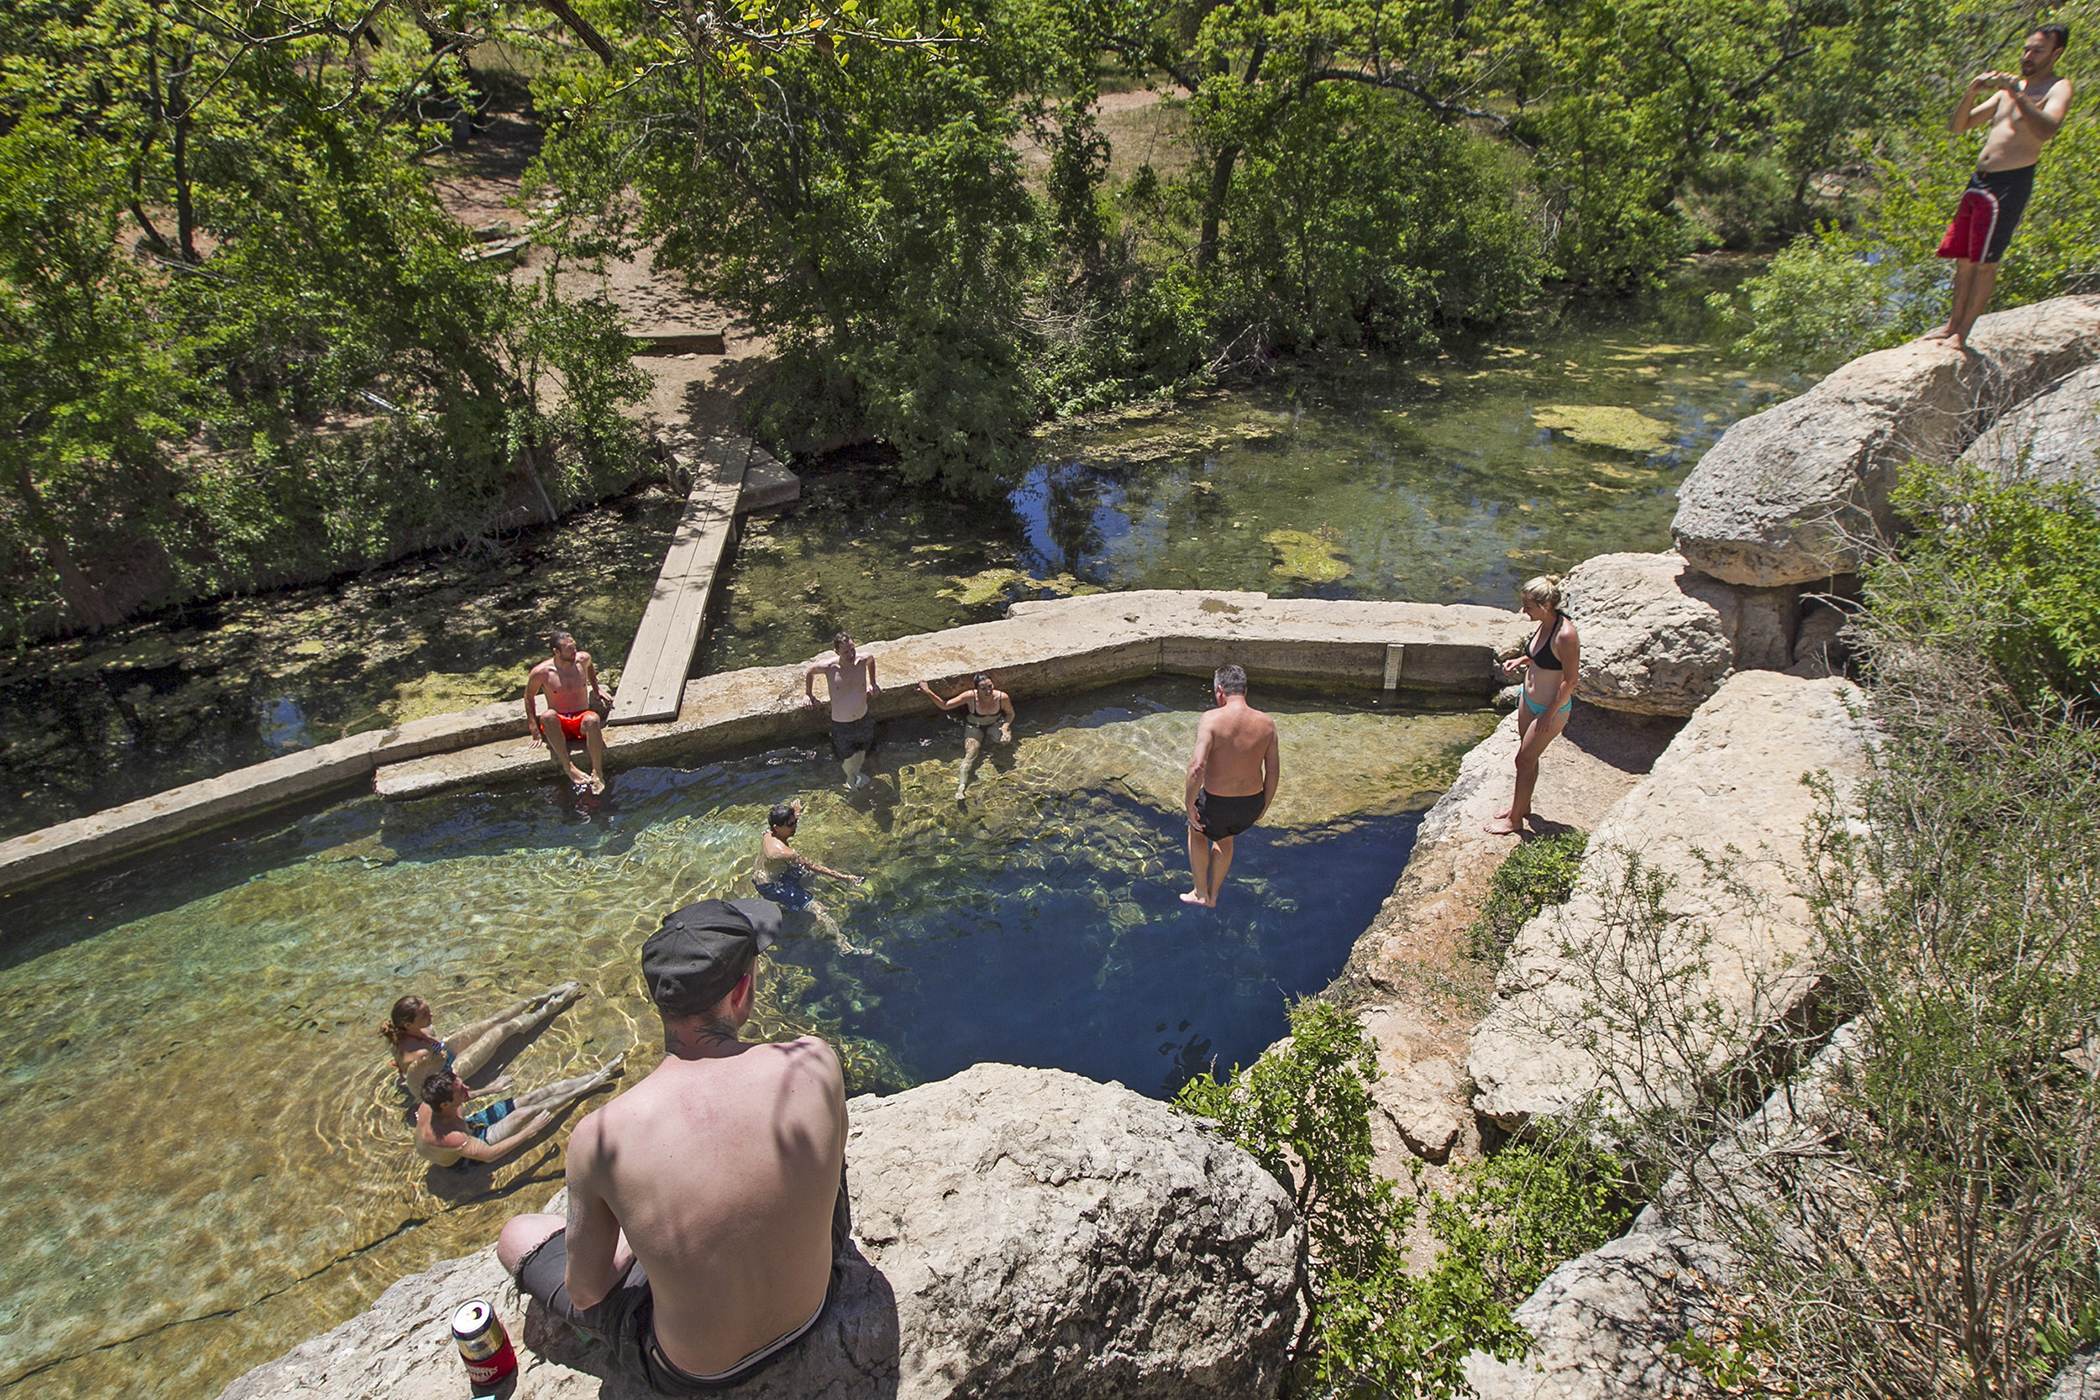 Visitors to Hays County's Jacob's Well Natural Area look on as a man leaps from the bluffs, aiming for the 12-foot cave opening though it is against park rules, in Wimberley, Texas, on Wednesday, April 30, 2014.